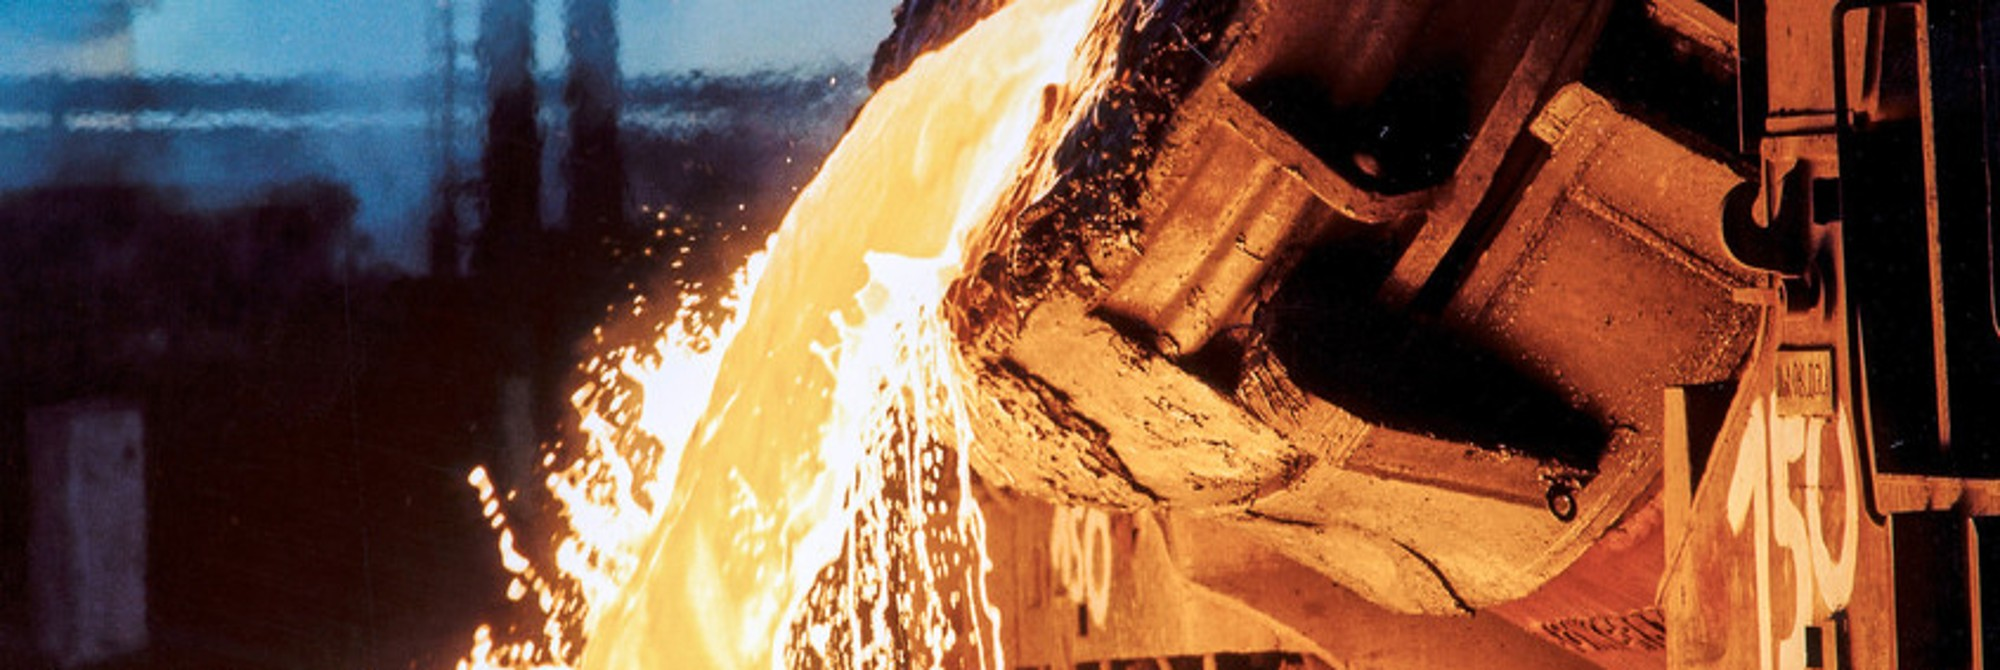 Overview Byproducts ThyssenKrupp Steel Europe